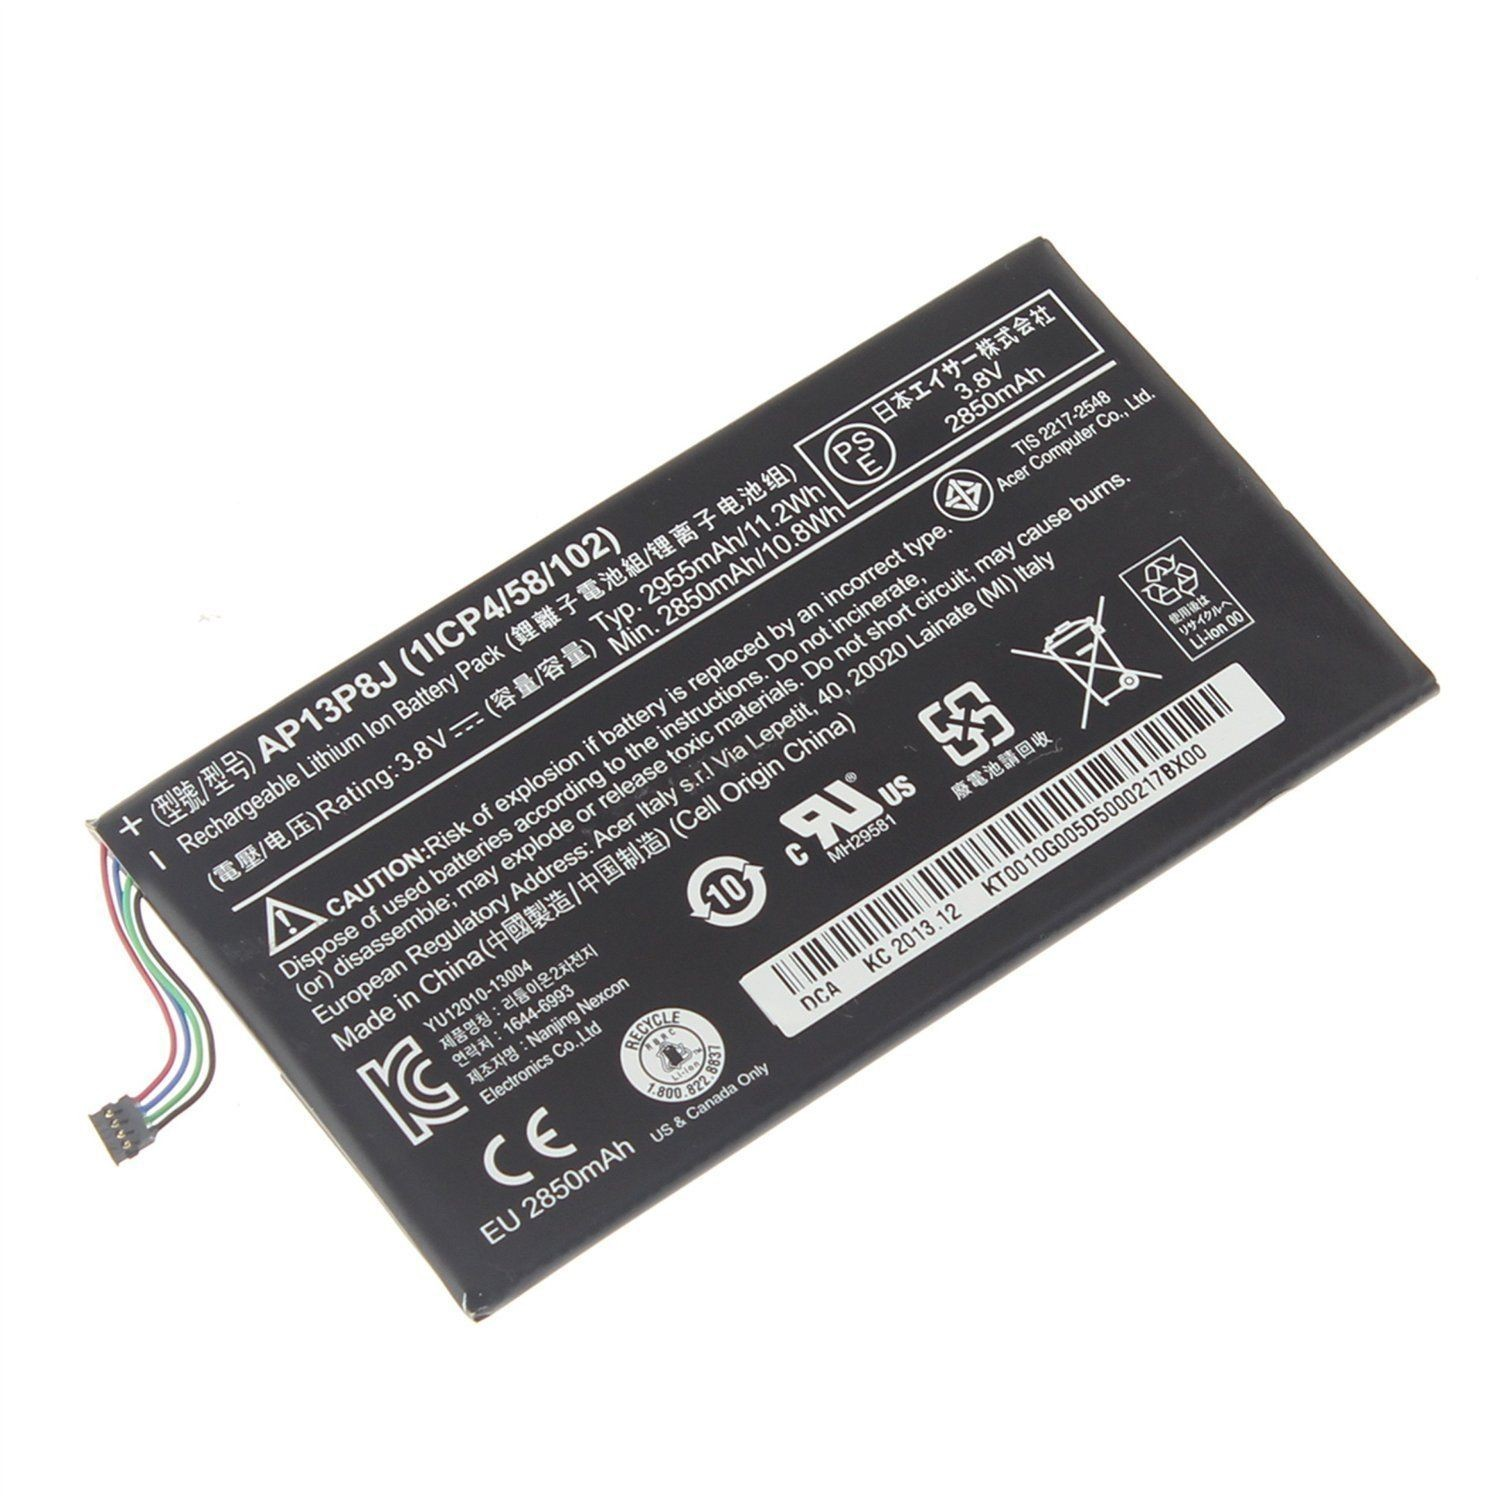 Replacement Acer Iconia Tab B1-720 Tablet KT.0010G.005